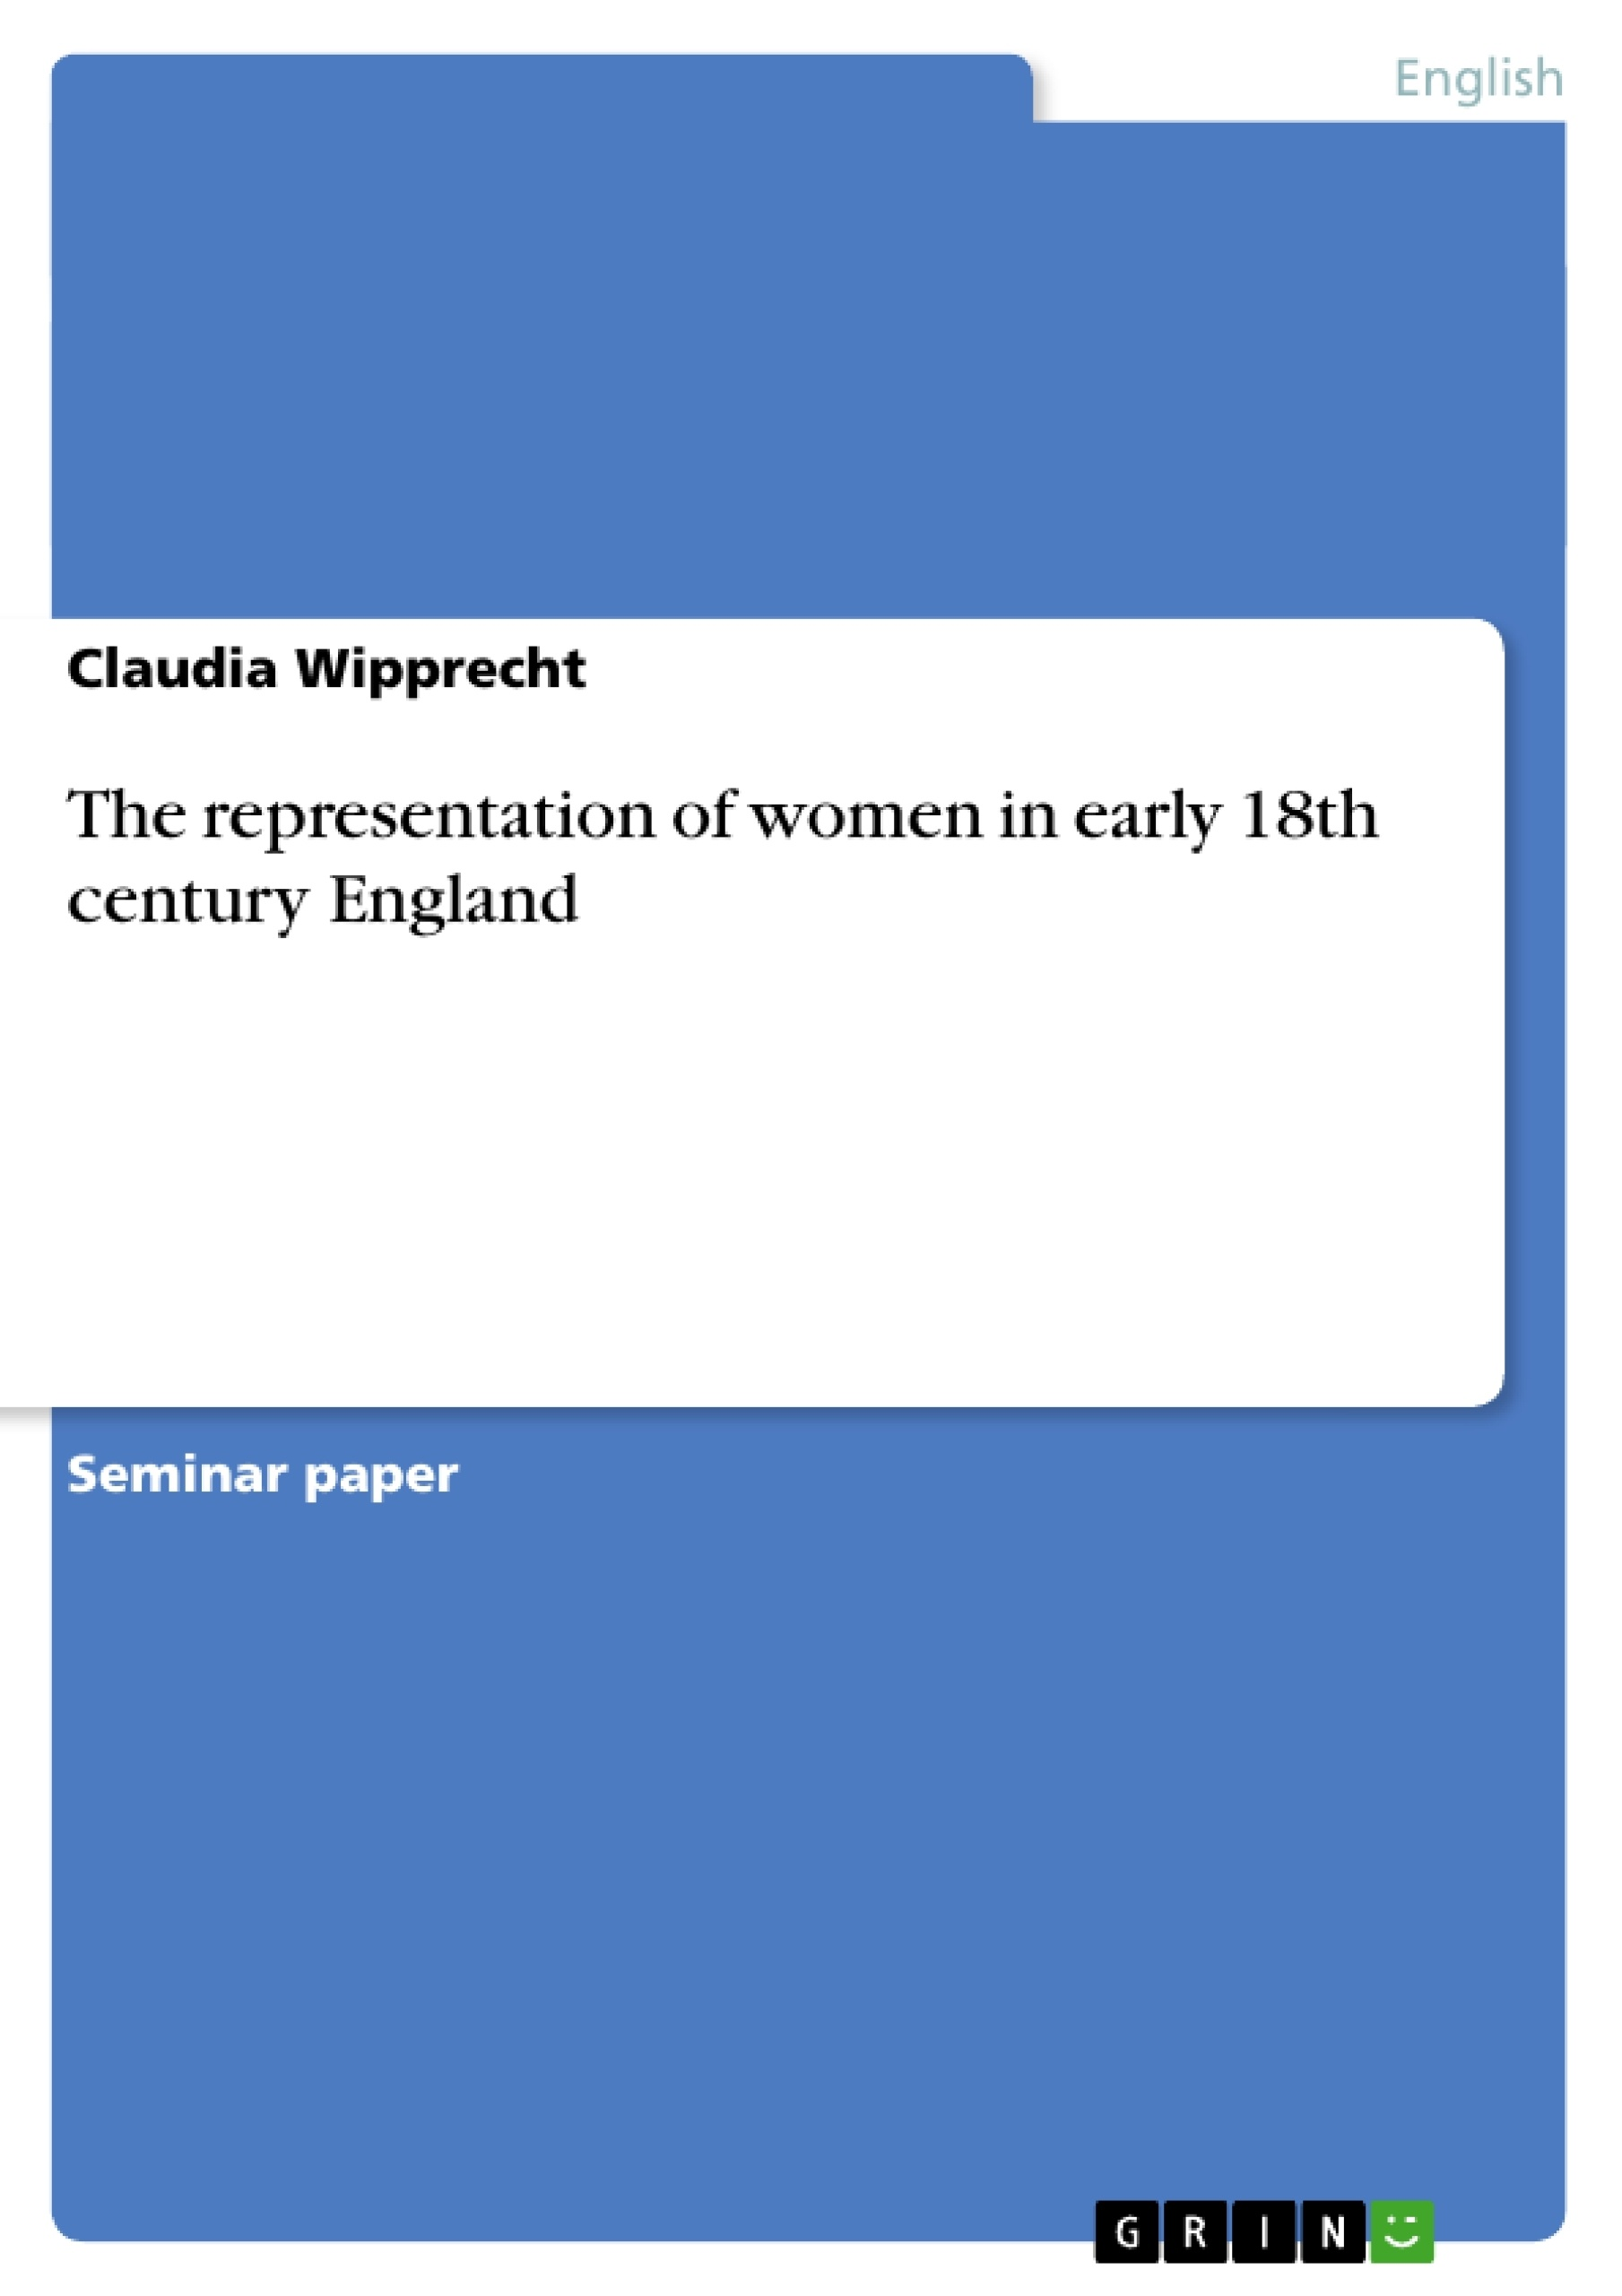 the representation of women in early 18th century england upload your own papers earn money and win an iphone 7